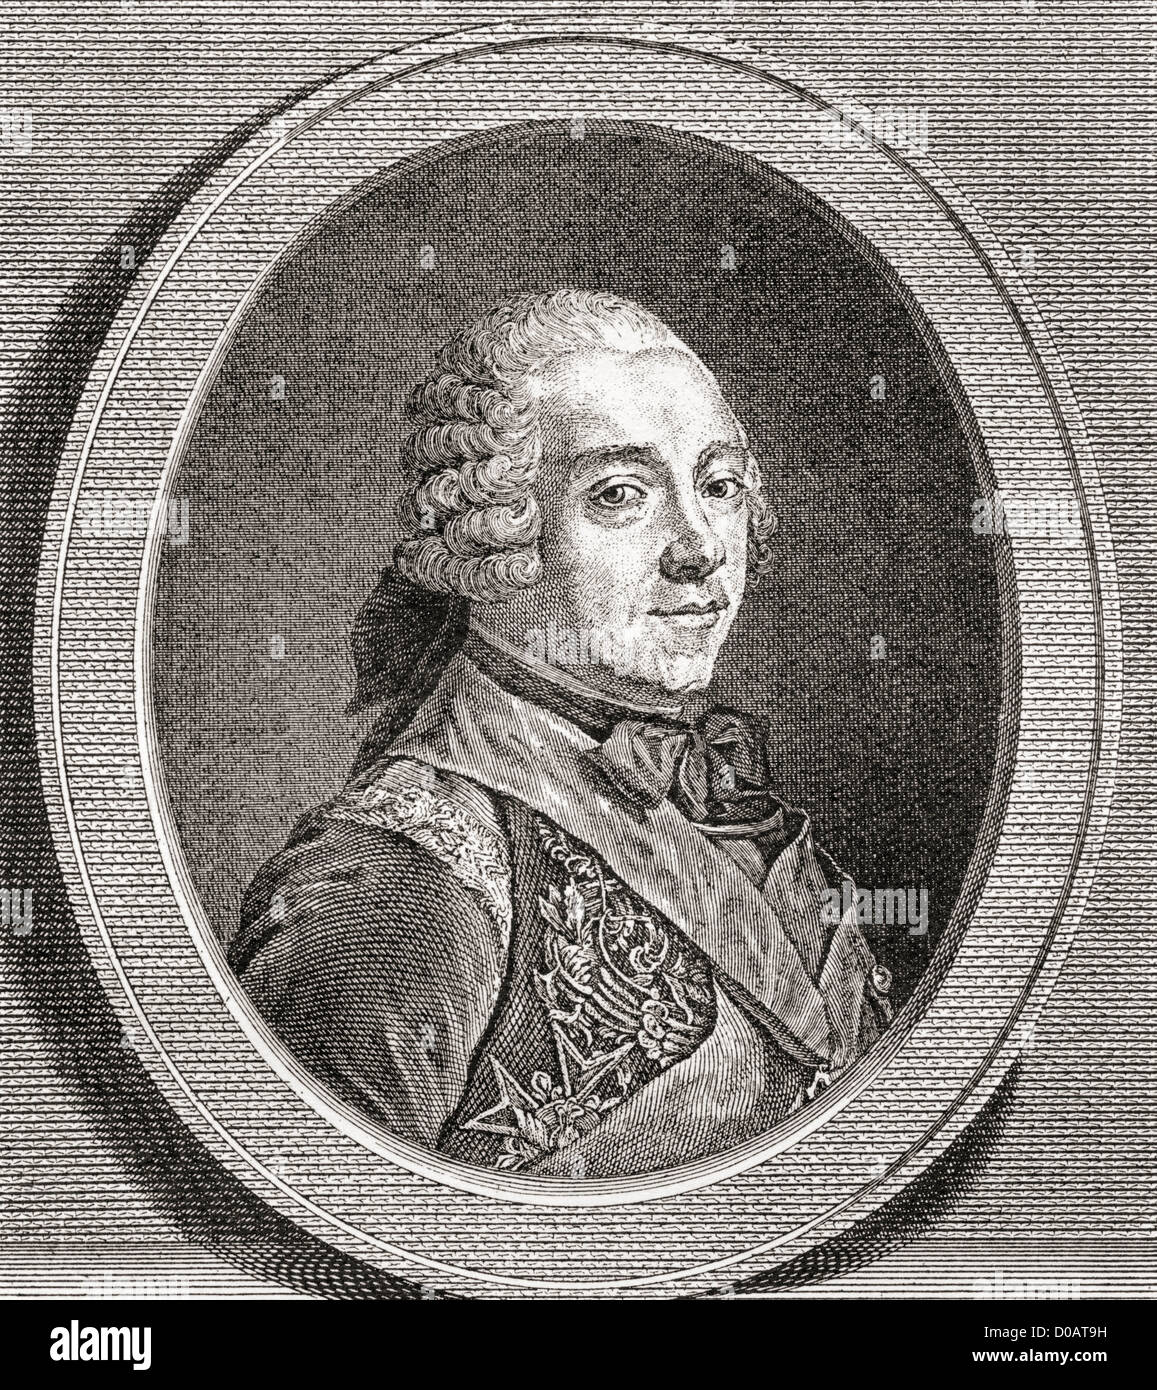 Charles Louis Auguste Fouquet, duc de Belle-Isle, 1684 –1761. French general and statesman. - Stock Image